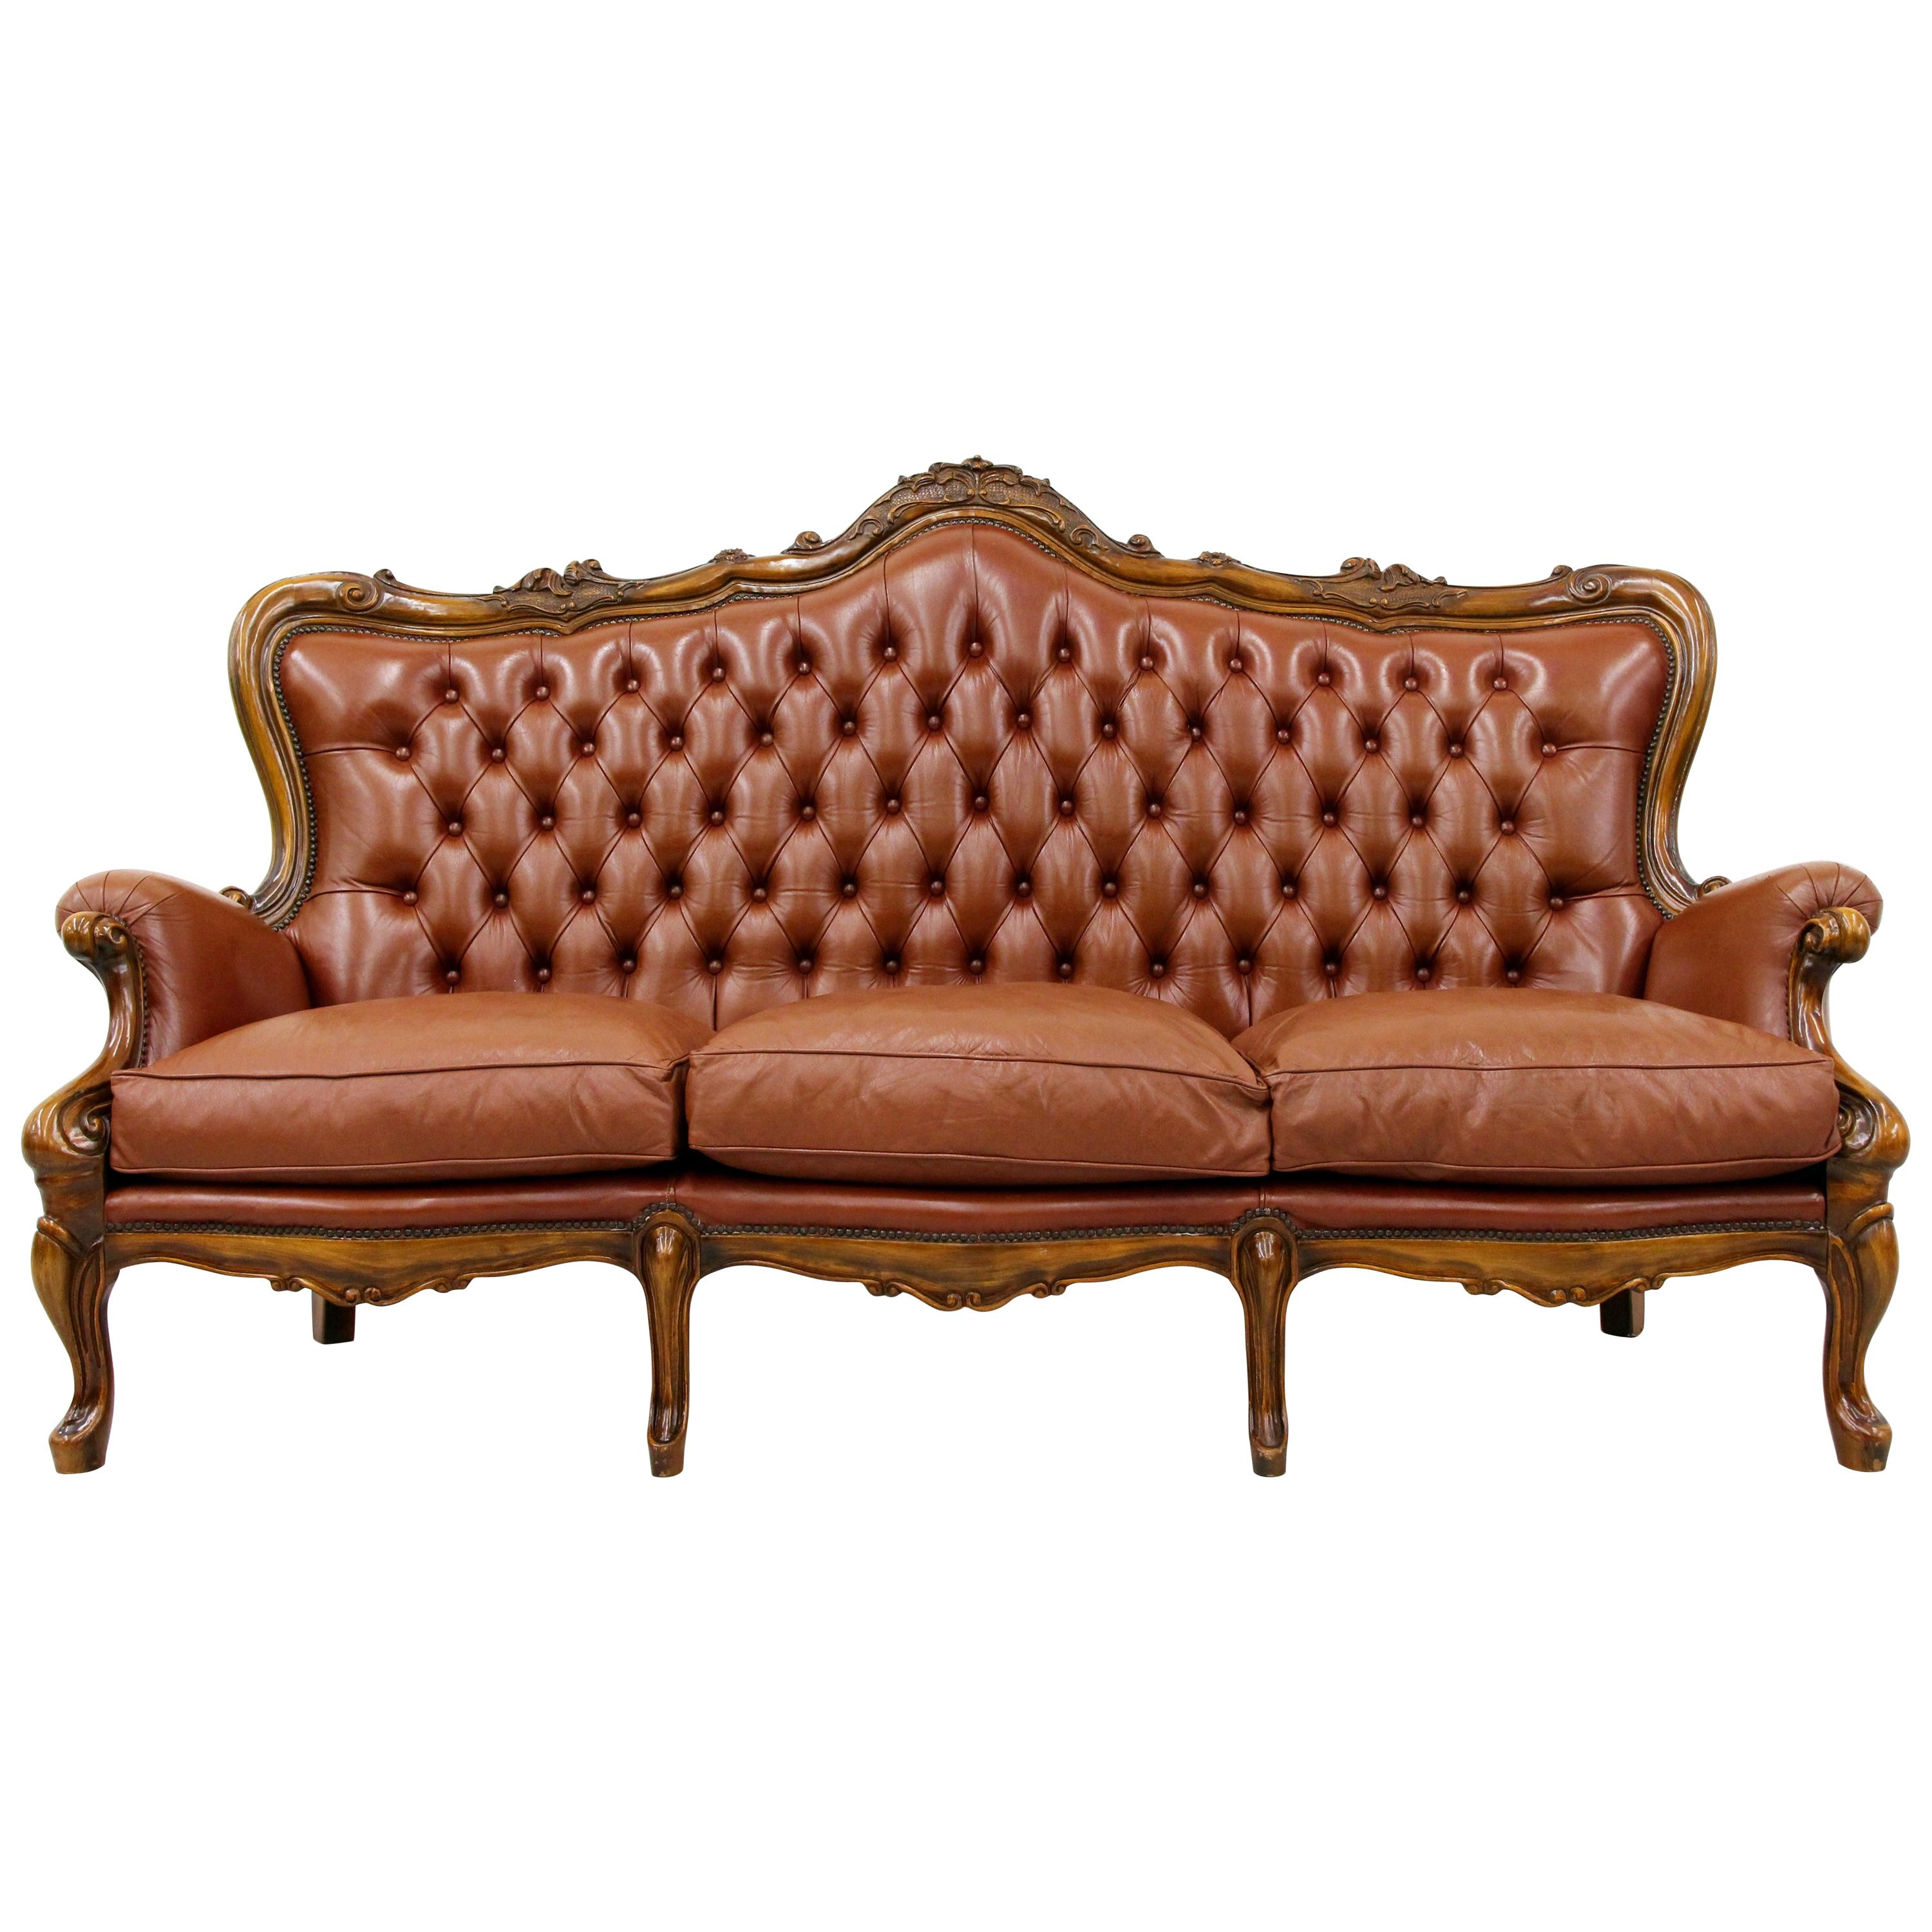 Vintage Couch Chippendale Chesterfield Sofa Leather Antique Vintage Couch English